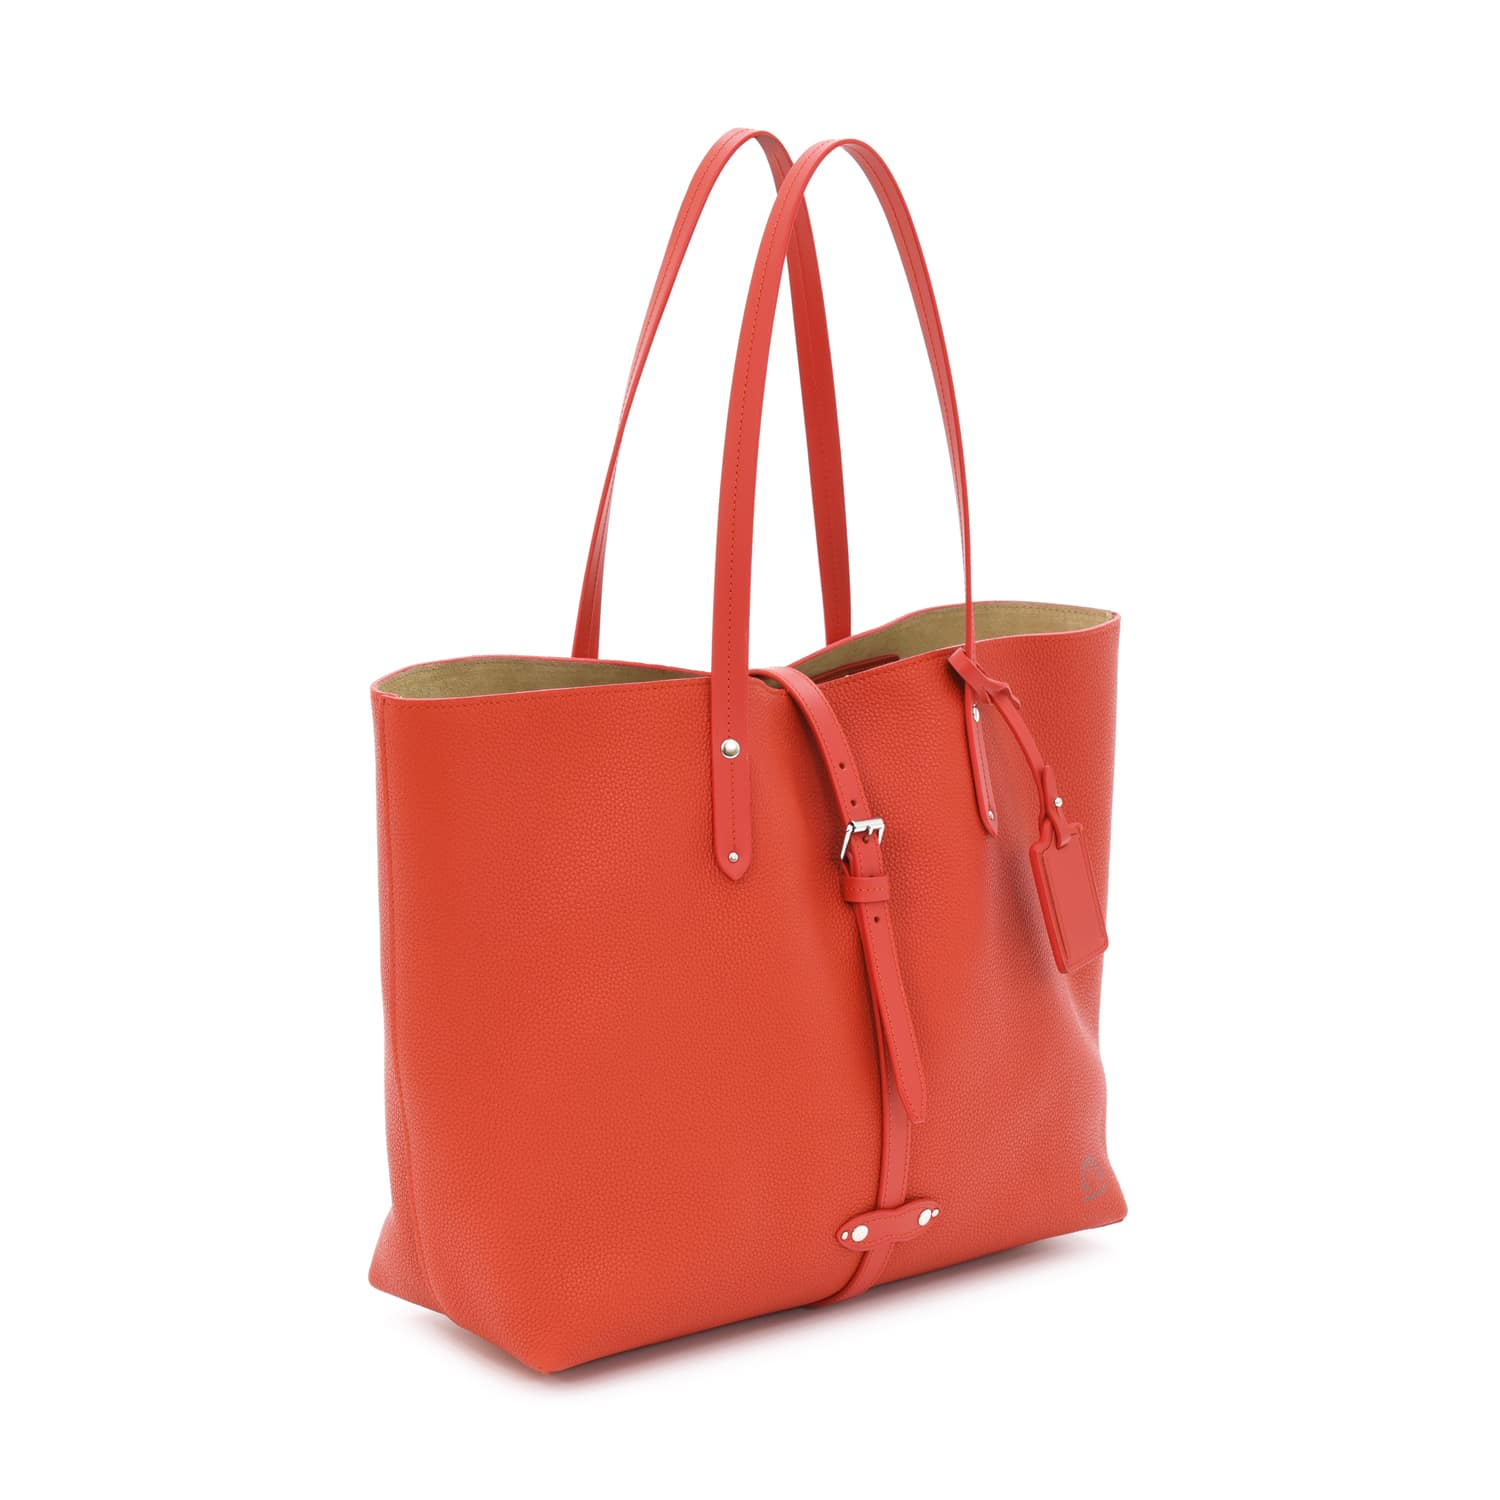 Centenary Leather · Tote Bag - Red